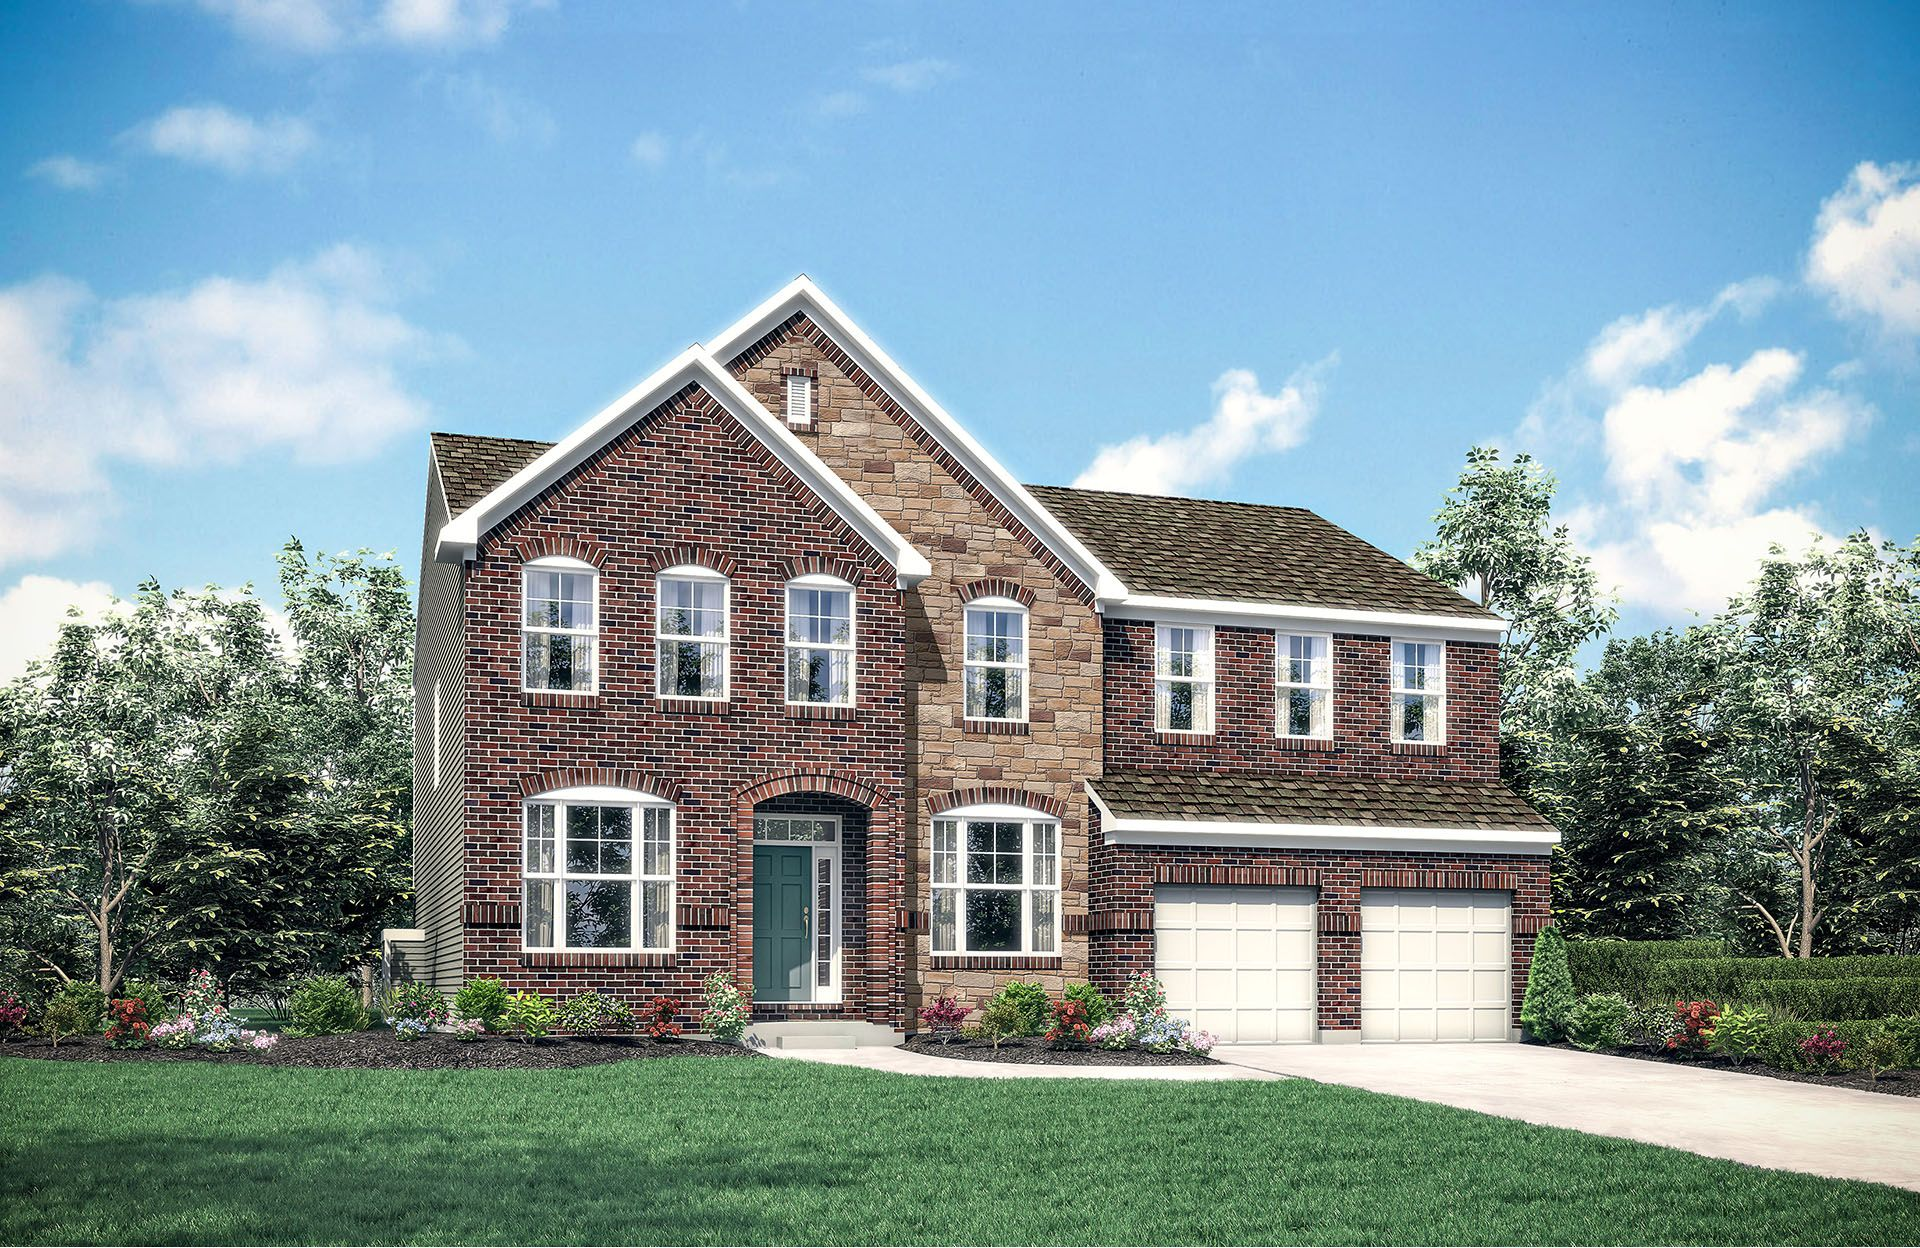 Single Family for Sale at Enclave At South Ridge - Buchanan 3416 Southway Ridge Erlanger, Kentucky 41018 United States